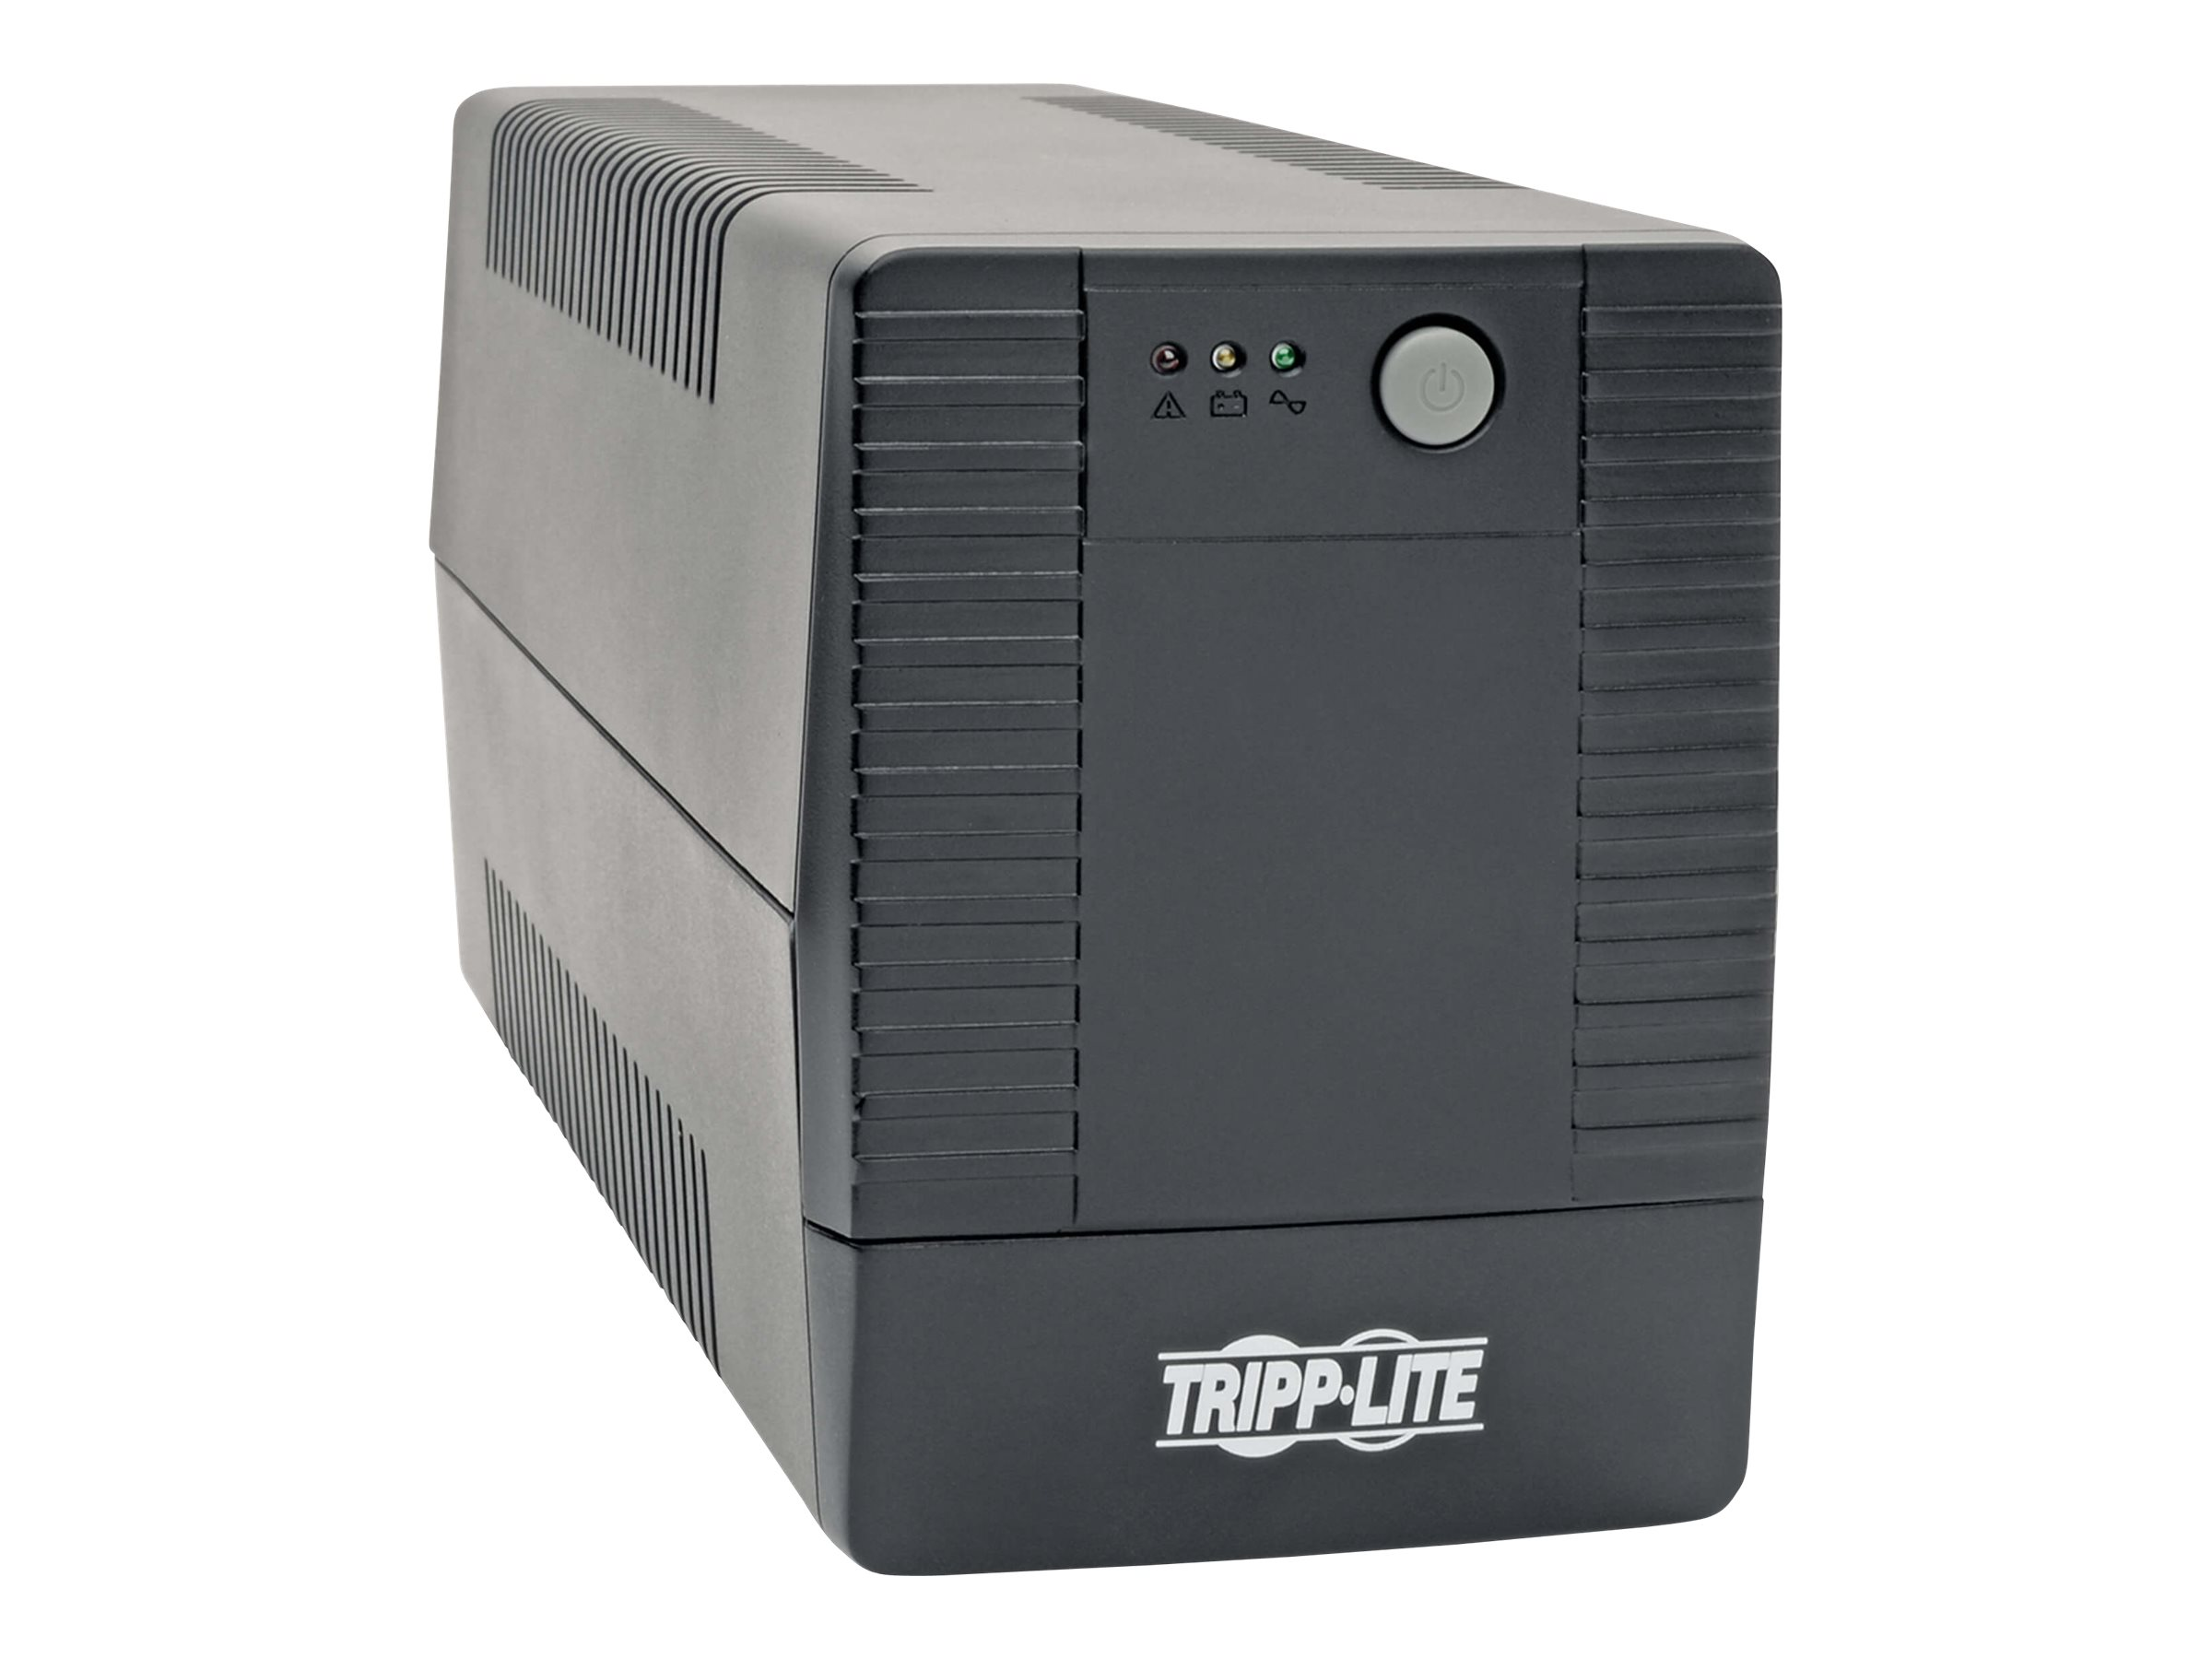 Tripp Lite 600VA 360W UPS Desktop Battery Back Up Compact 120V 6 Outlets - UPS - 360 Watt - 600 VA